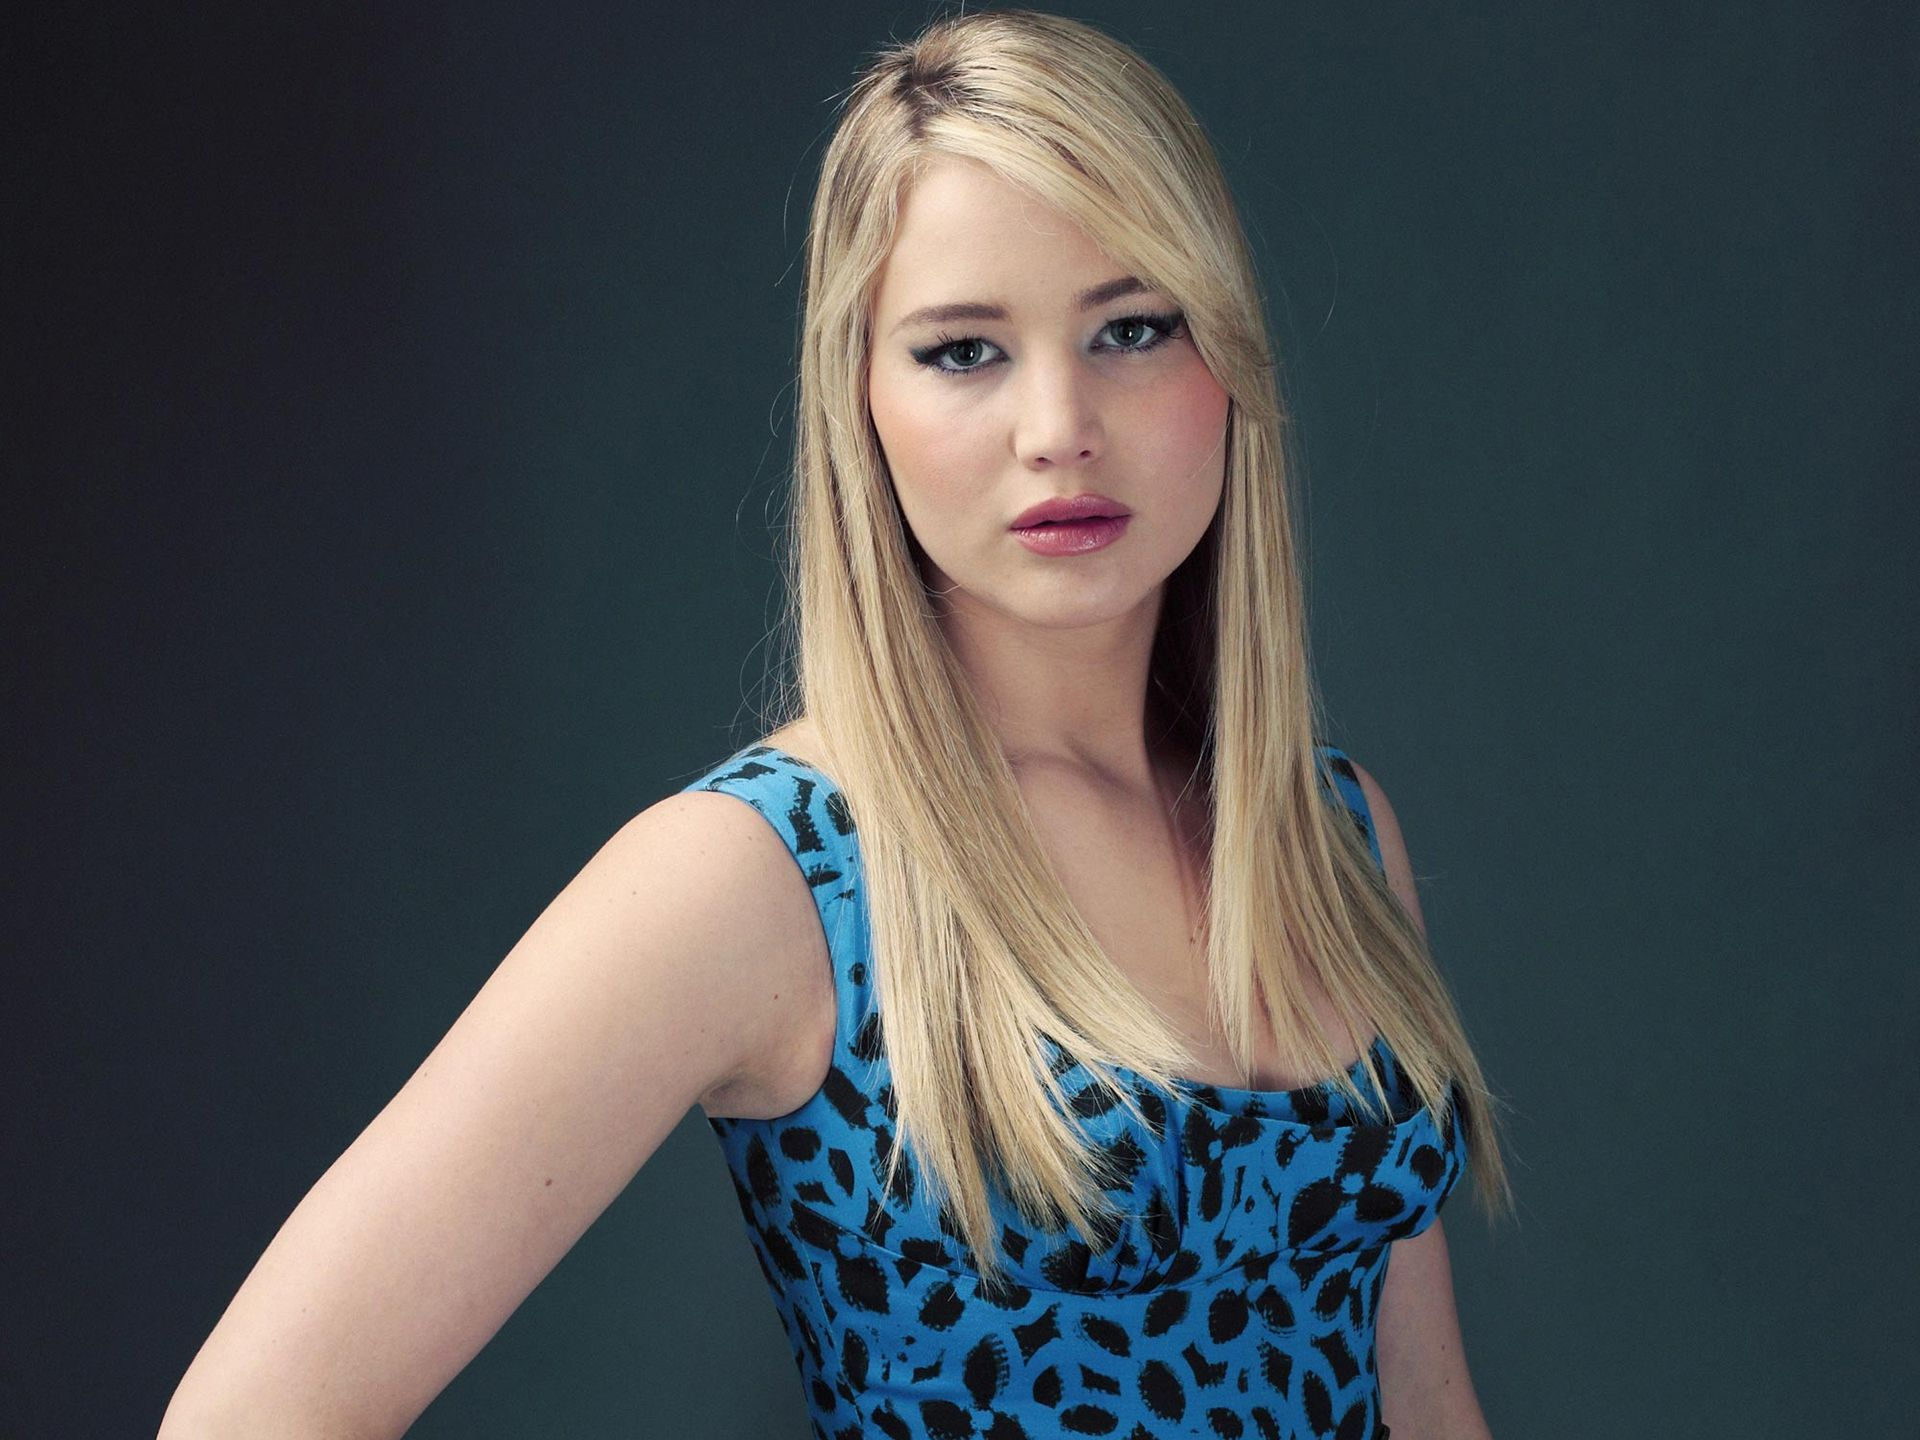 Jennifer Lawrence HD Wallpapers - Free download latest Jennifer Lawrence HD  Wallpapers for Computer, Mobile